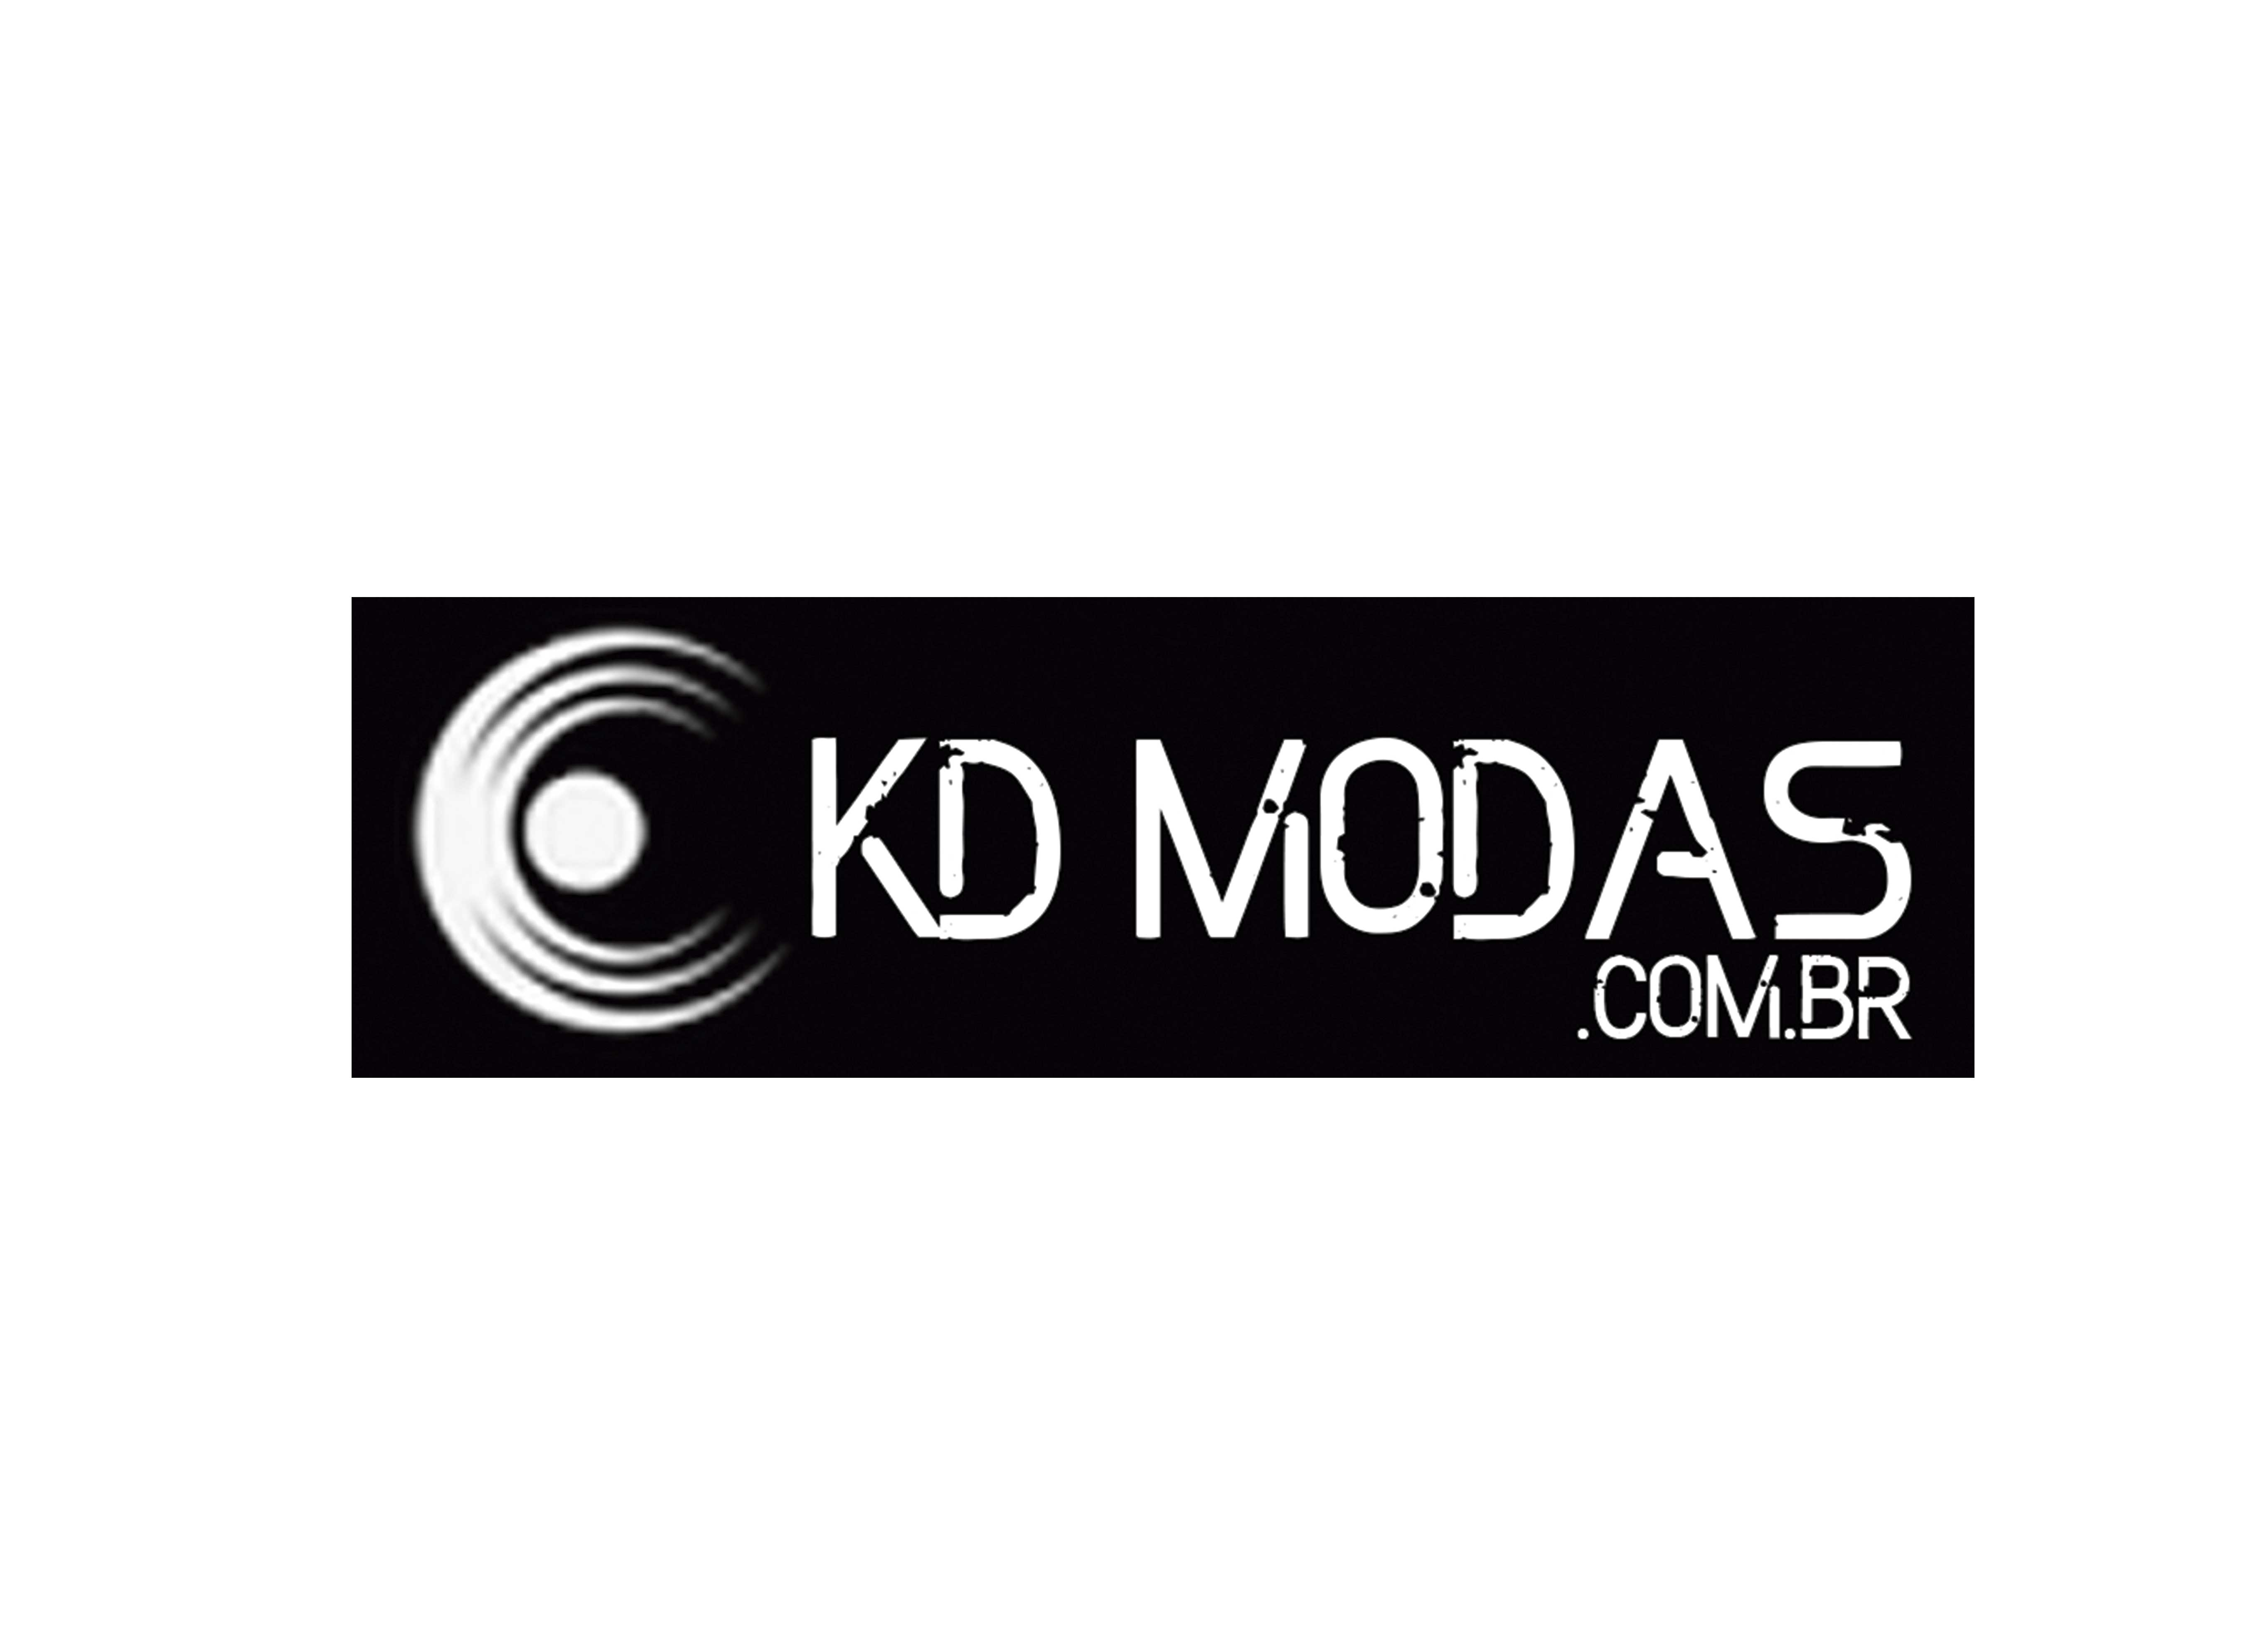 kdmodas-drc-marketingdigital